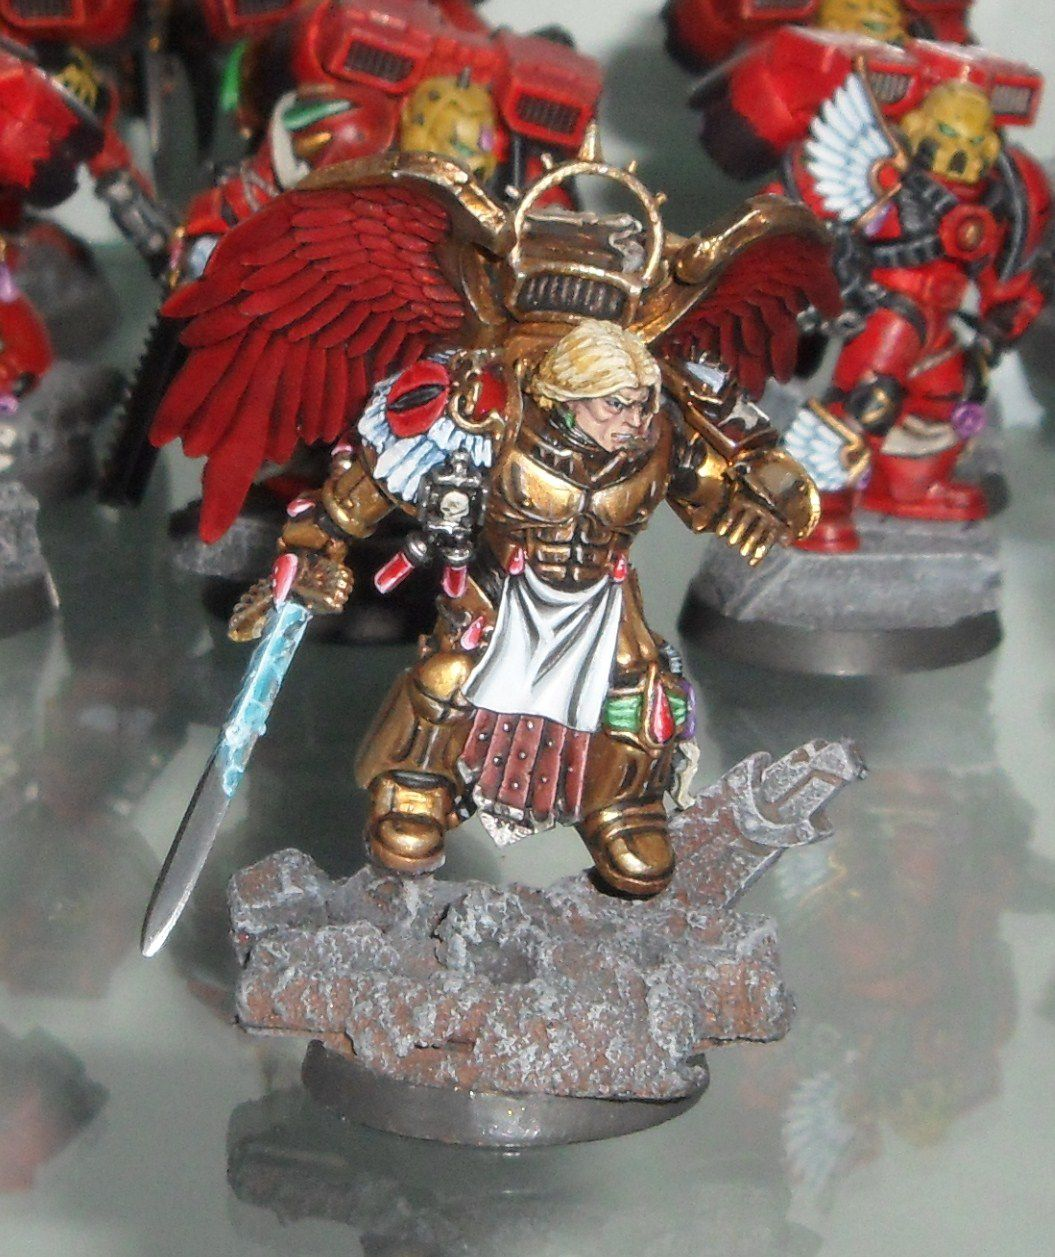 [IX] Par le sang de Sanguinius. Armée Blood Angels 30K. SAM_3144